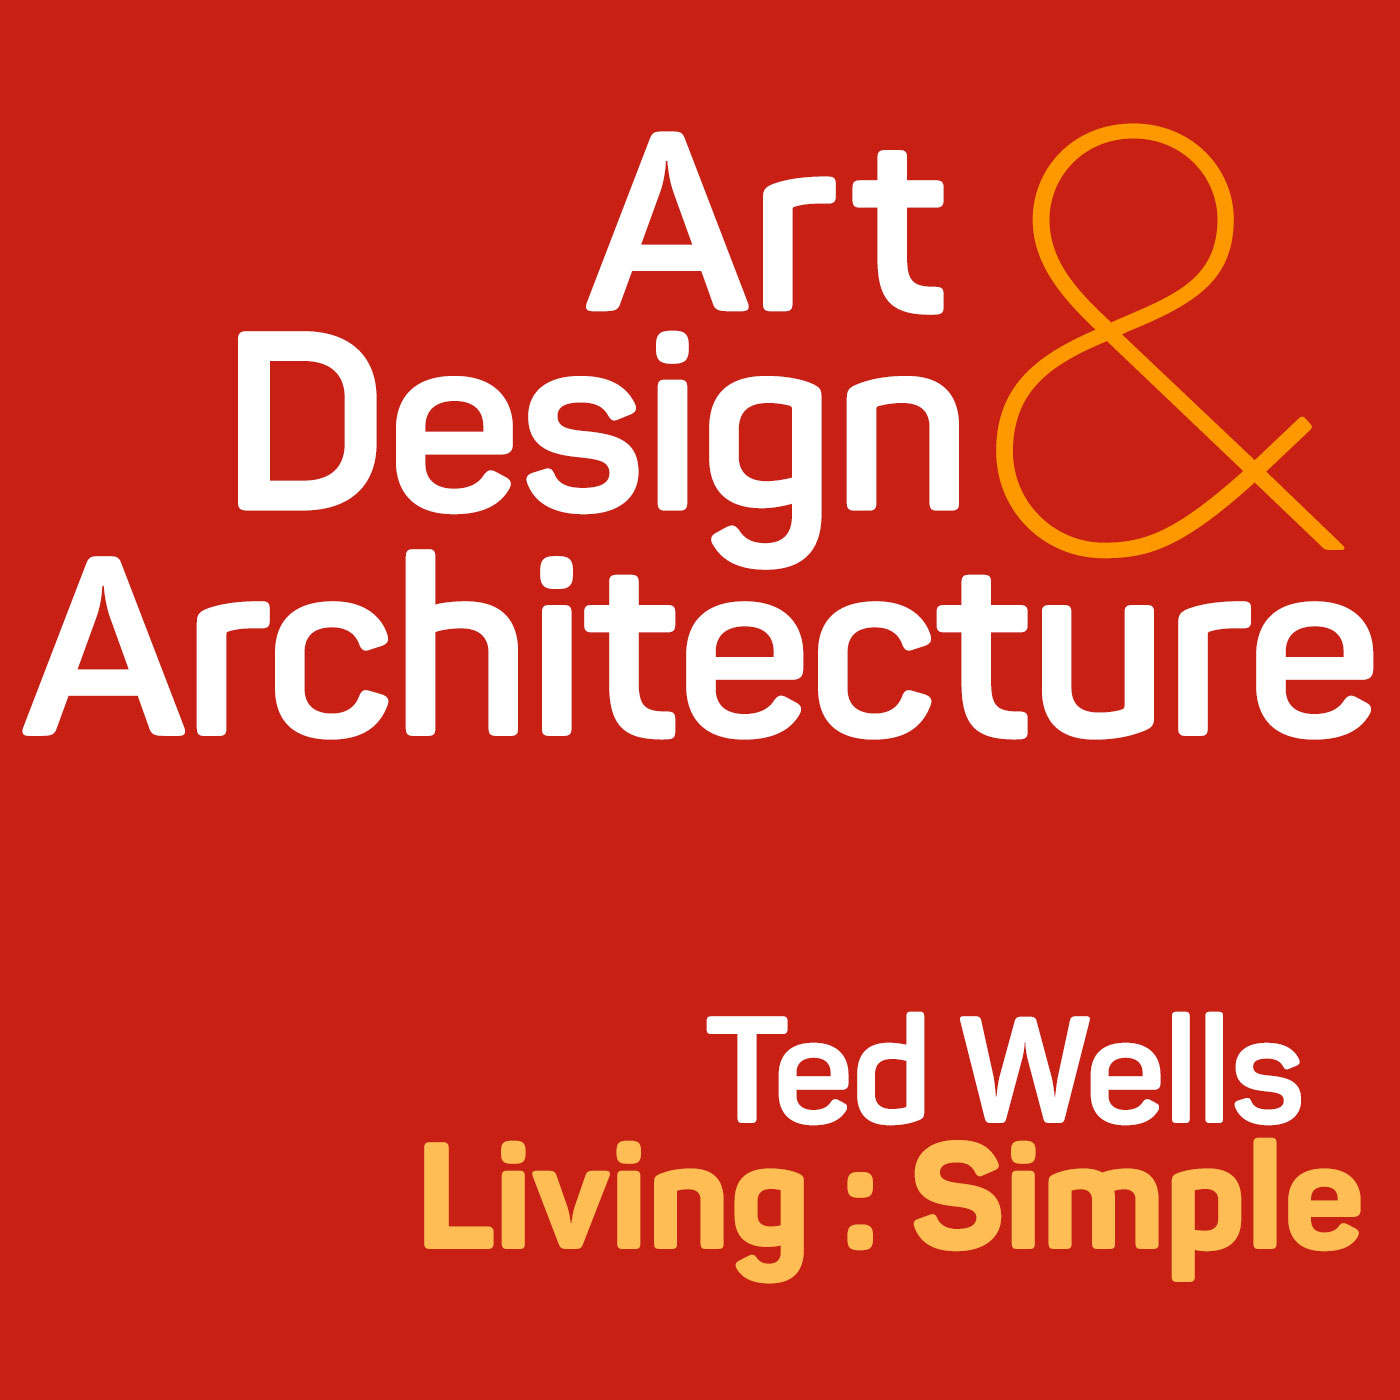 Ted Wells living : simple show art